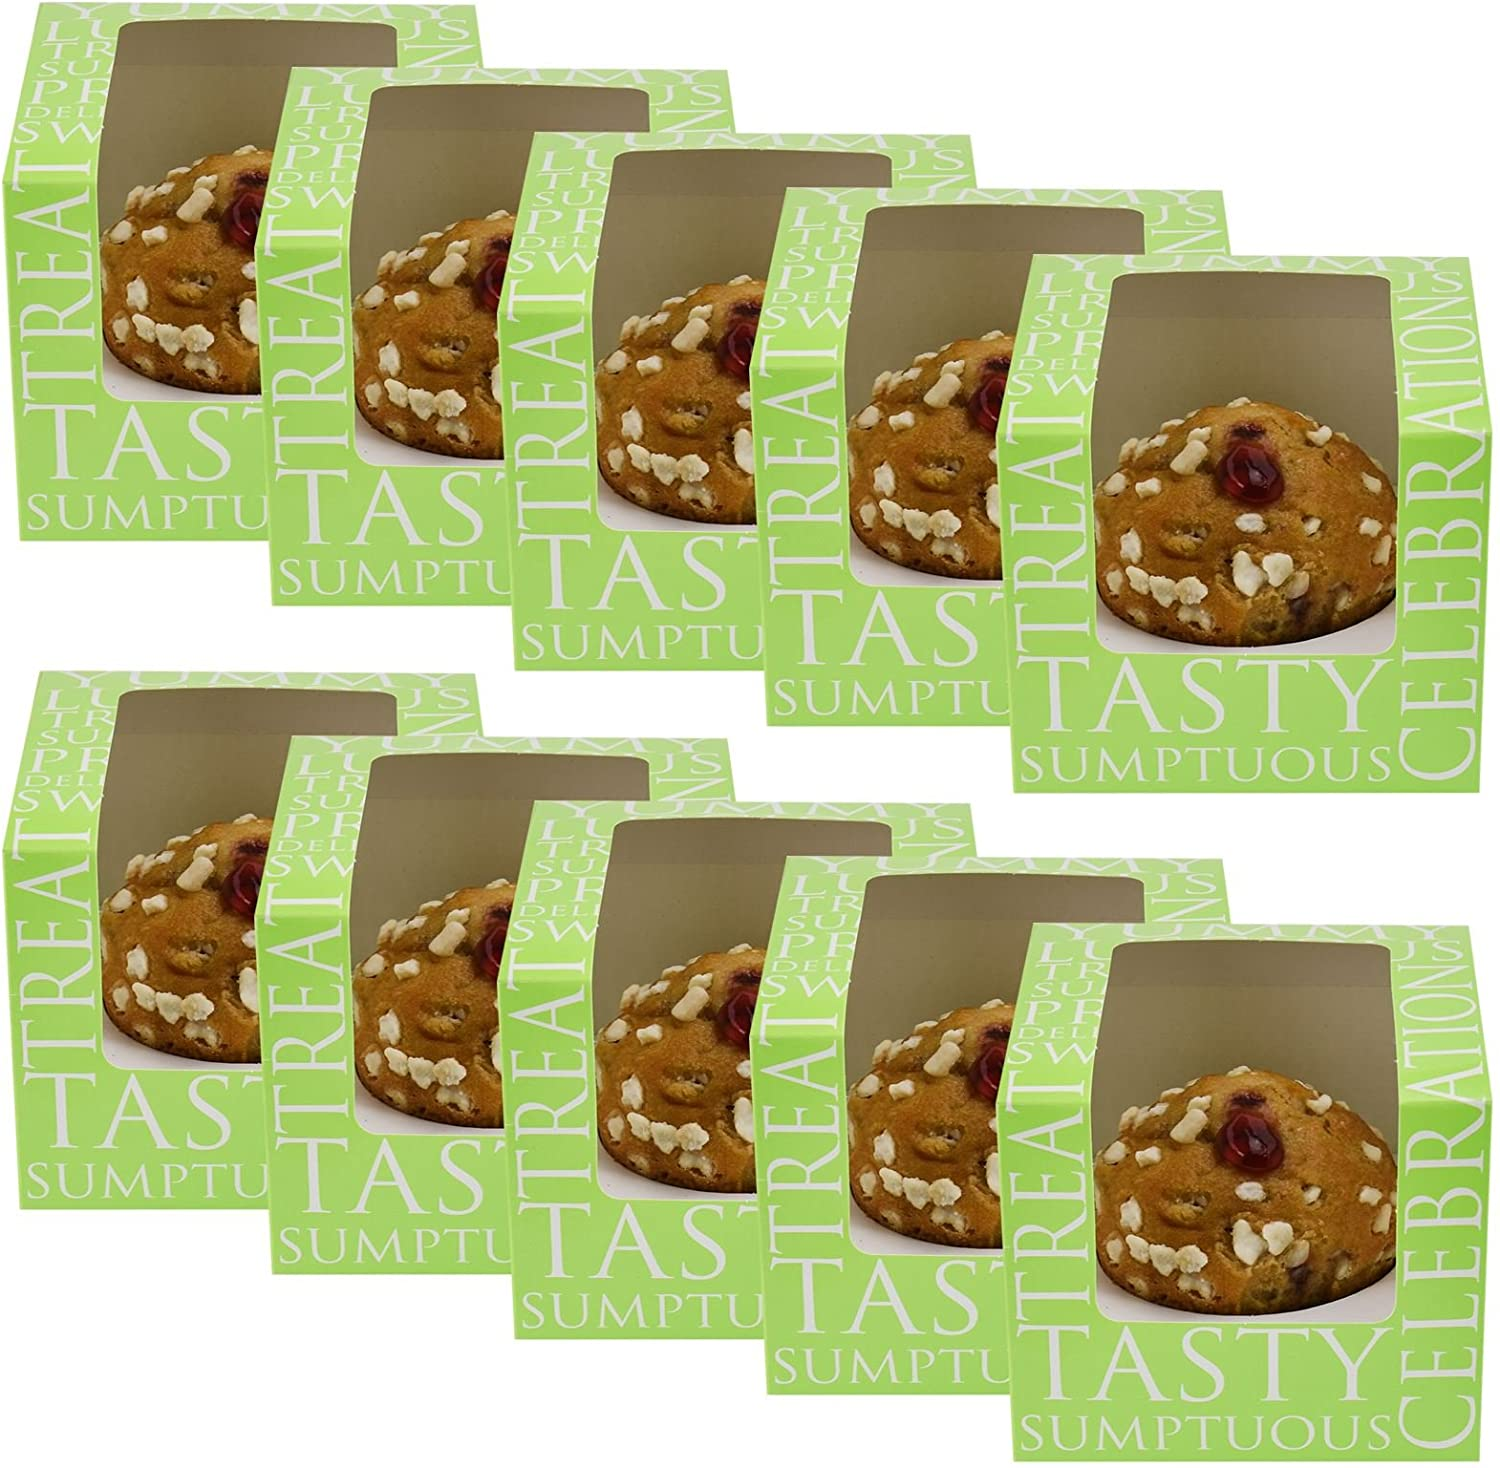 Professional Cupcake Display//Packaging Boxes Clear Acetate Windows Removable Single Cake Holder Inserts Flat Packed Easy Assembly Green 2 Pack